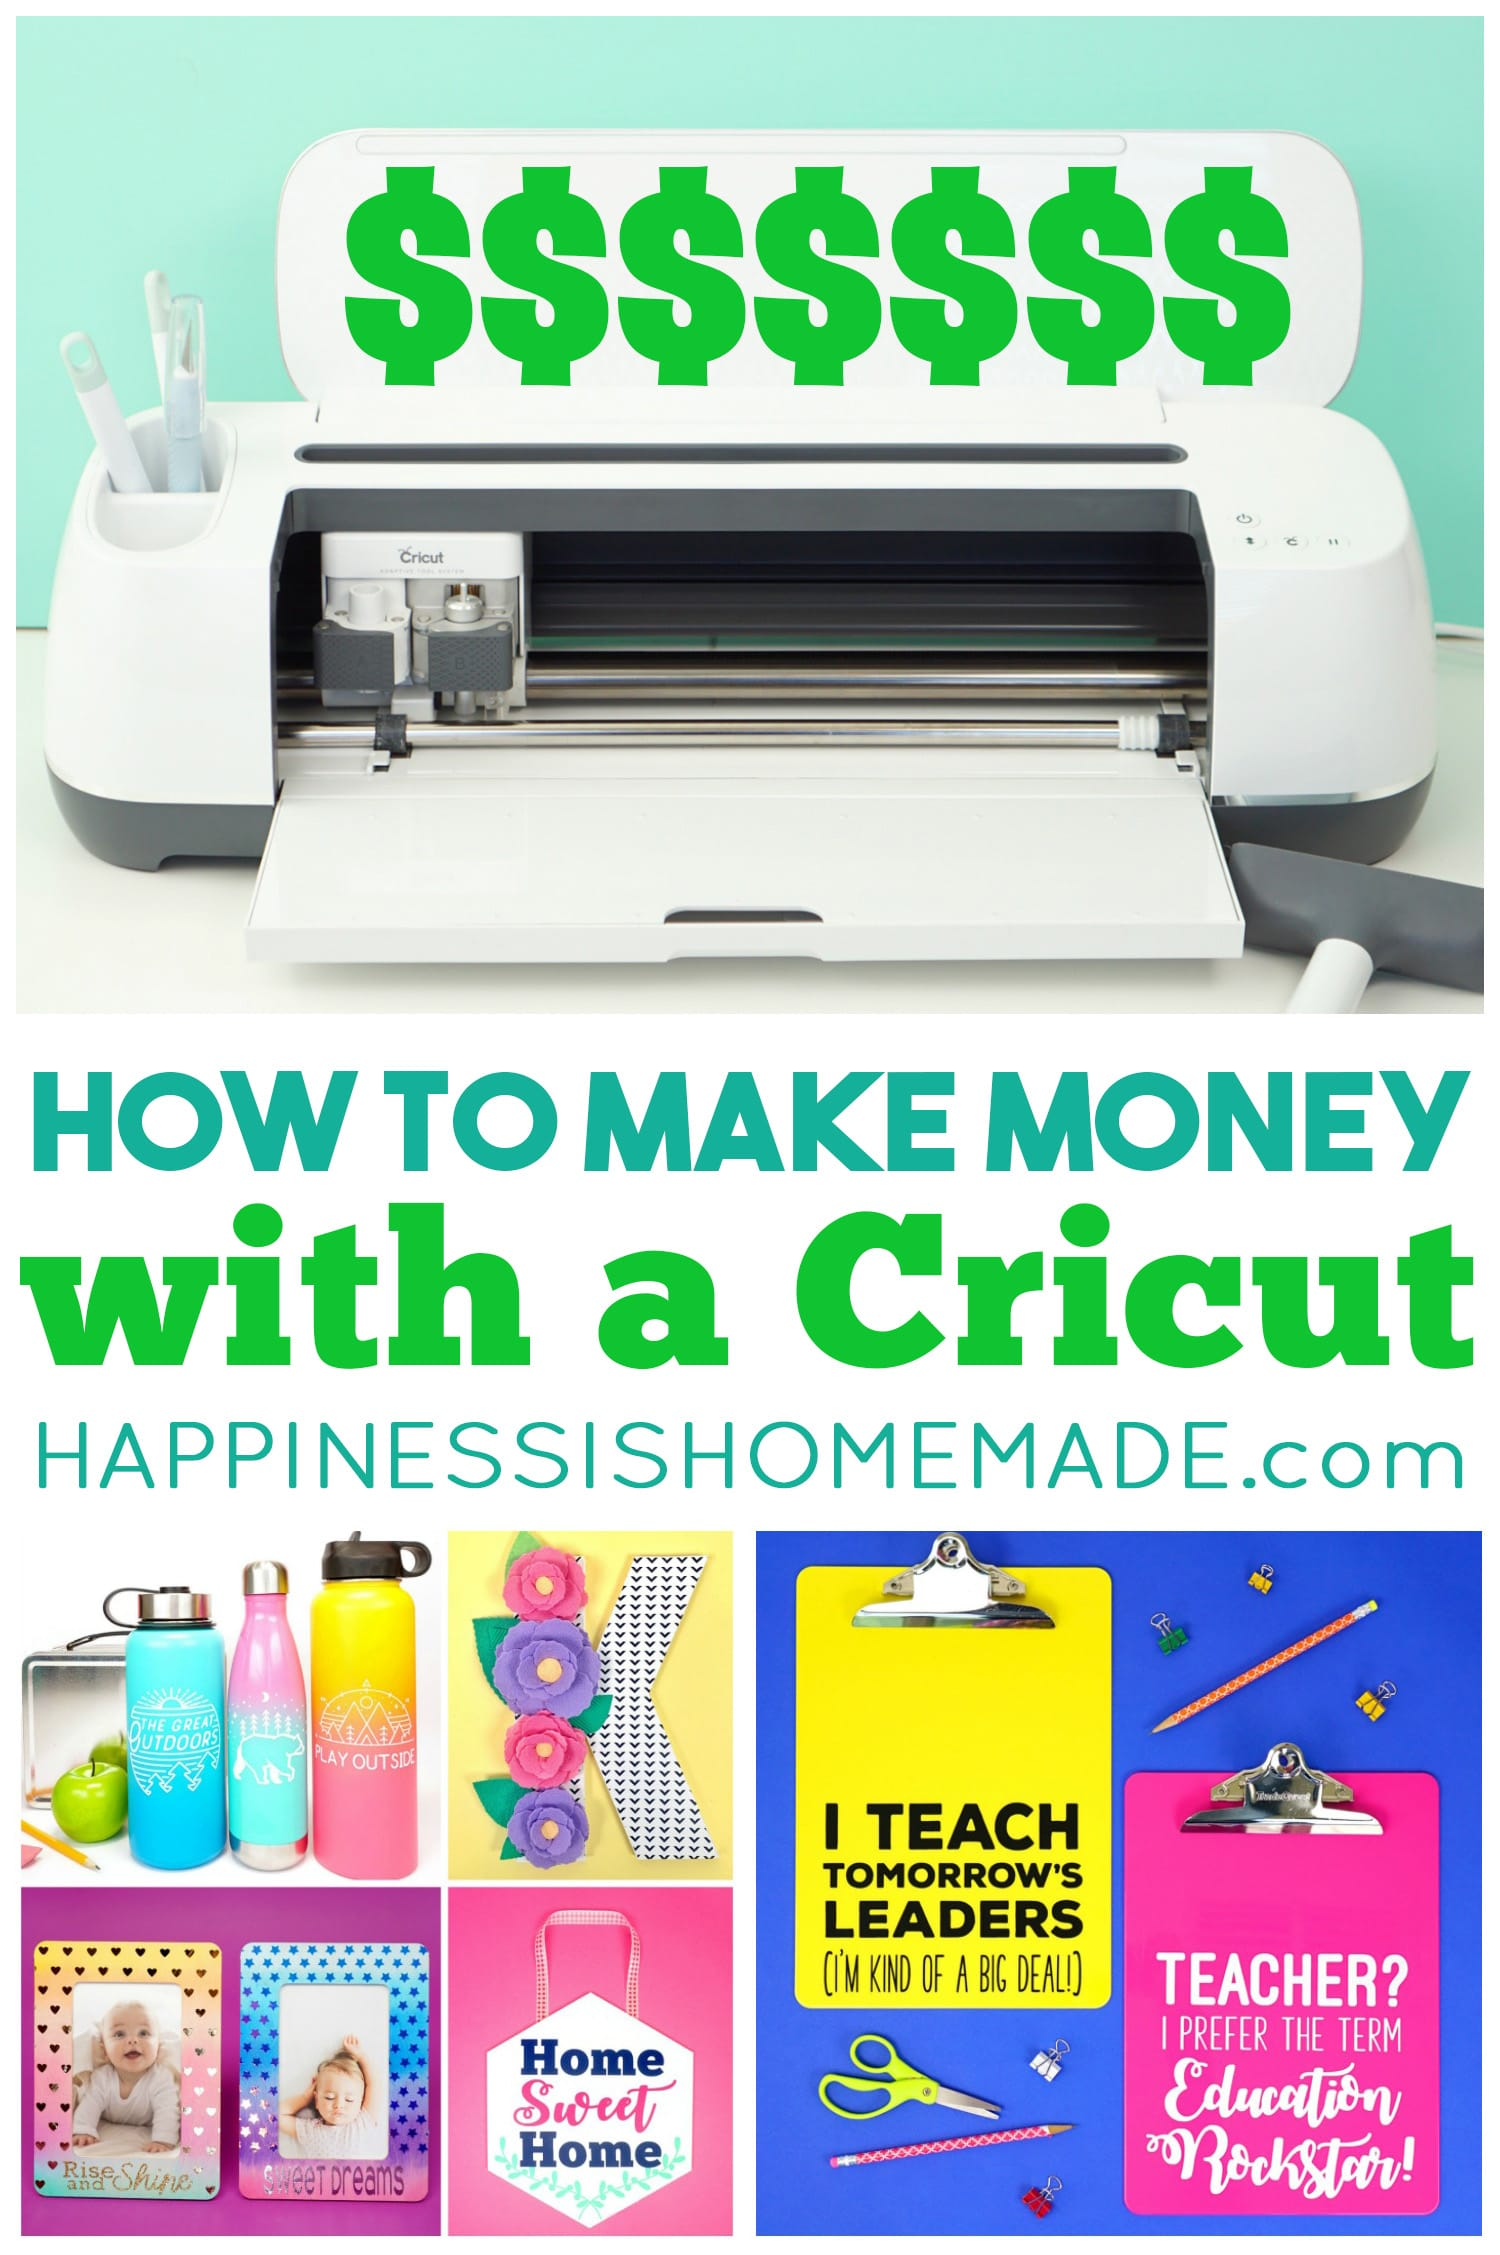 Cricut Maker machine and collage of various projects